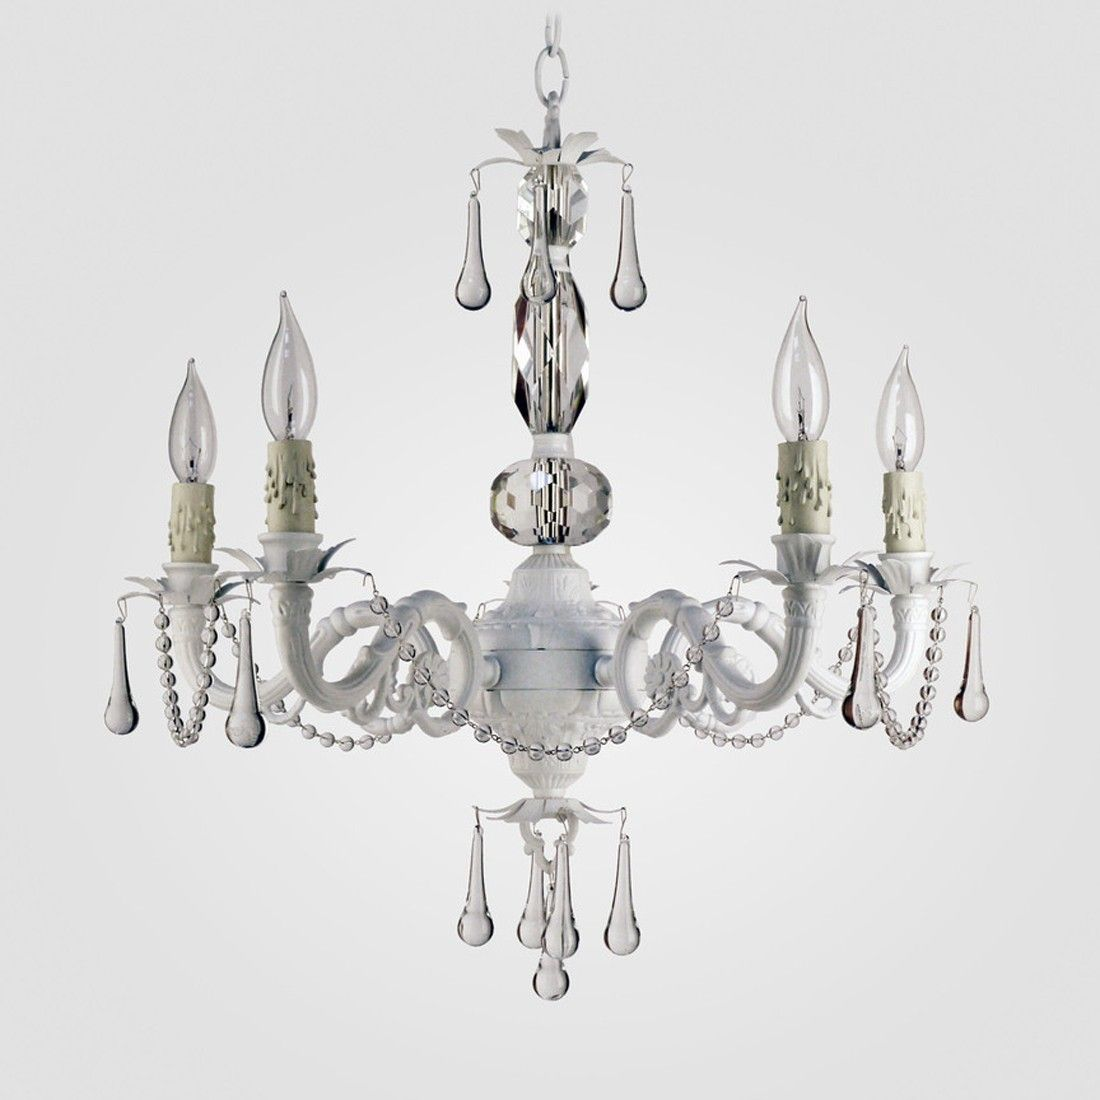 Maura Daniel Faith Gloss Pink With Clear Crystals In 5 Lights Exudes Chandelier Wiring Black White Modern Day Elegance